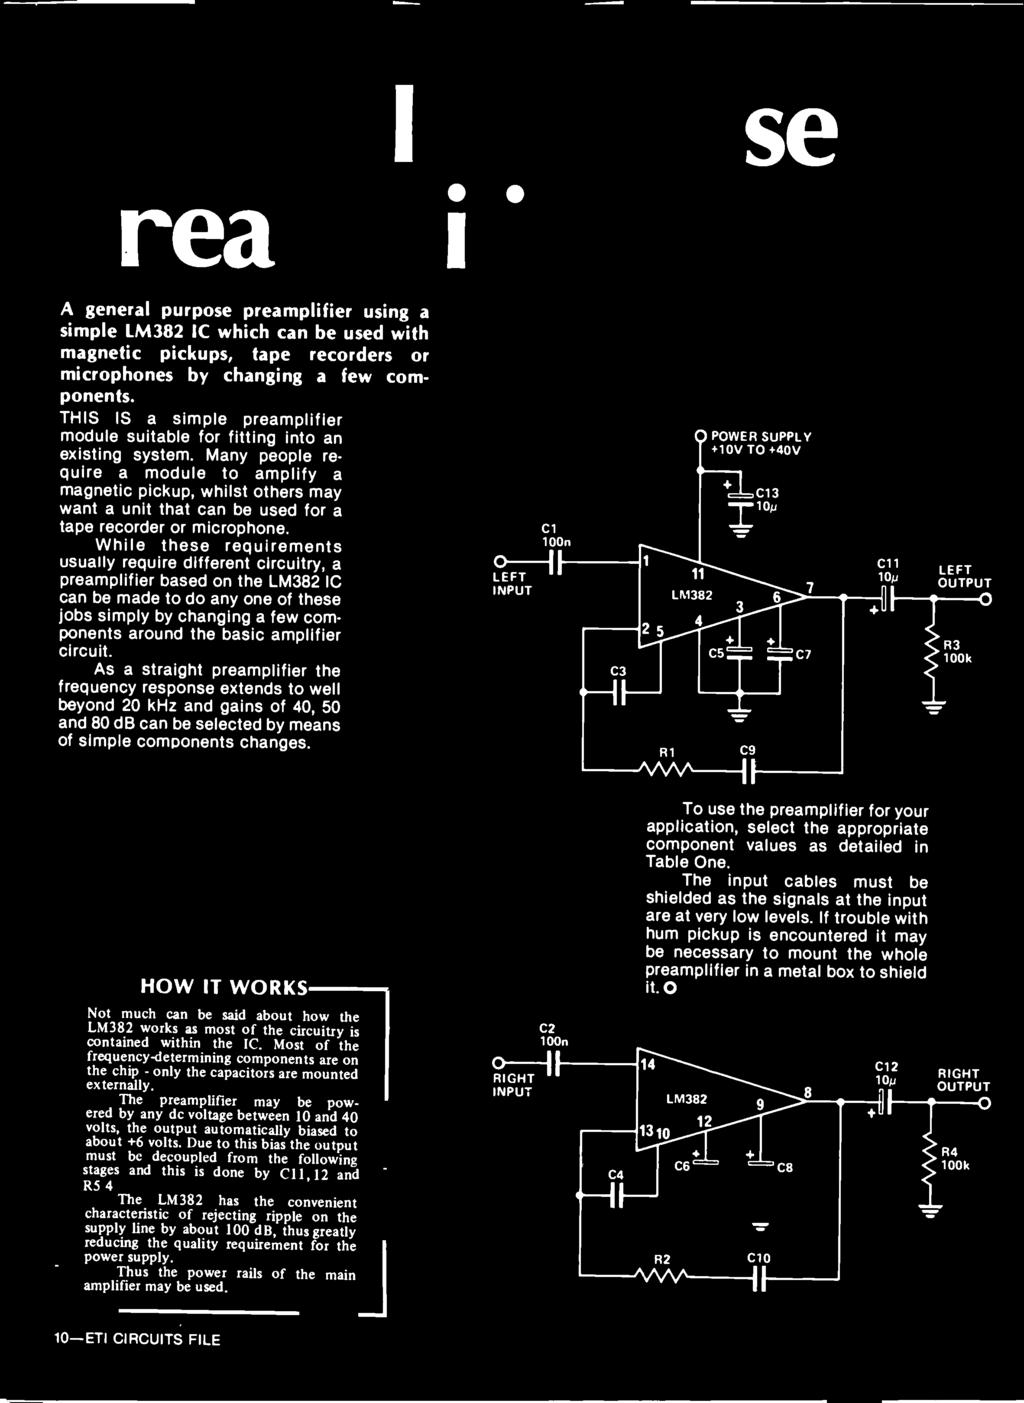 5395 Aspects Audio Design A Large Articles Tackle Are How Stripboard Relay Shield Circuit Diagram Click For Bigger Image The Preamplifier May Be Powered By Any Dc Voltage Between 10 And 40 Volts